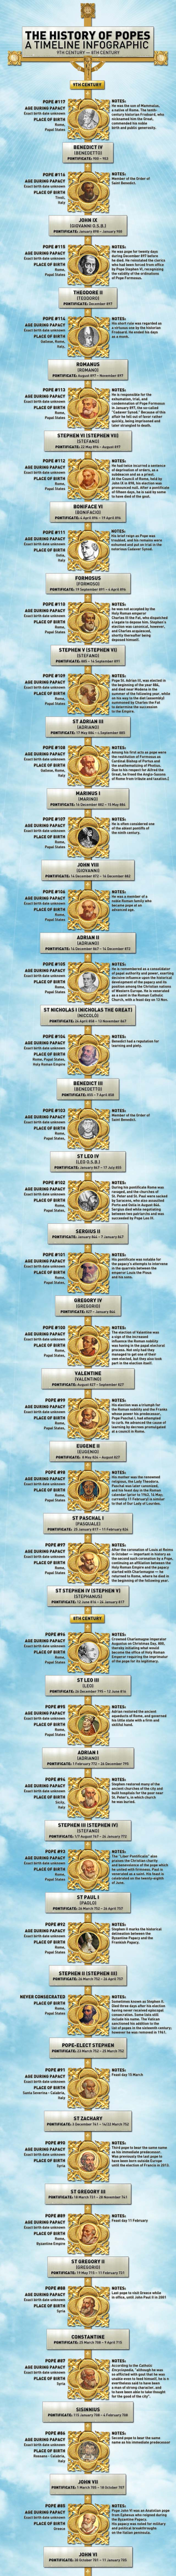 list of popes infographic